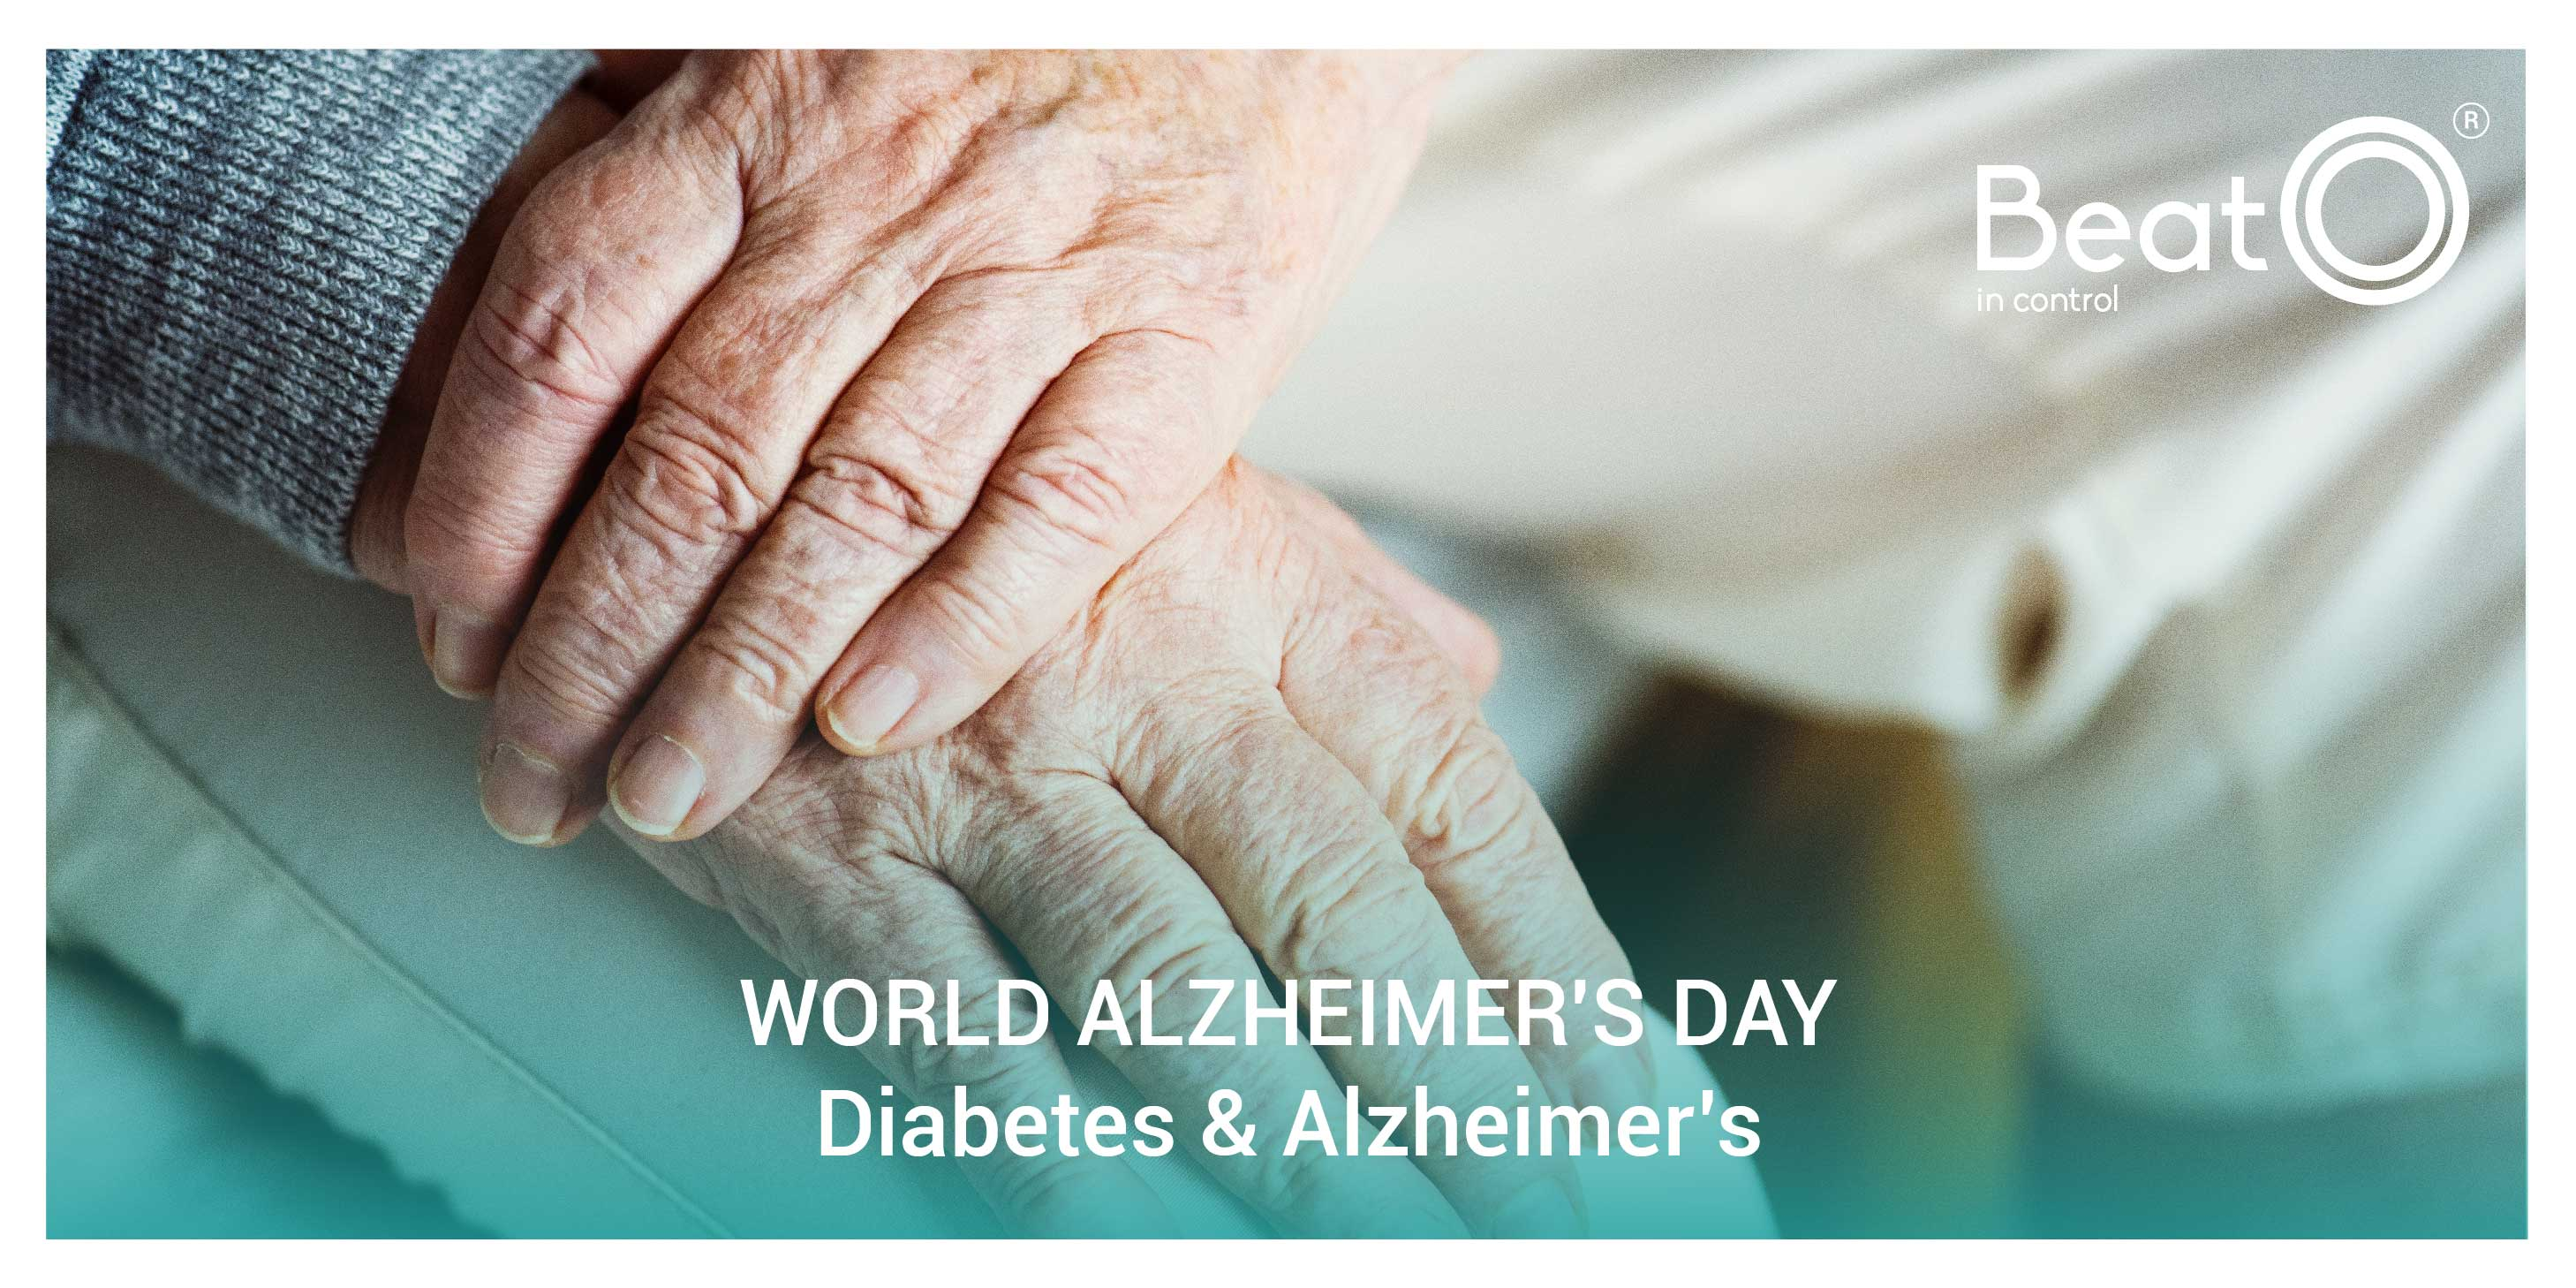 Alzheimer's Disease and Diabetes- The Association